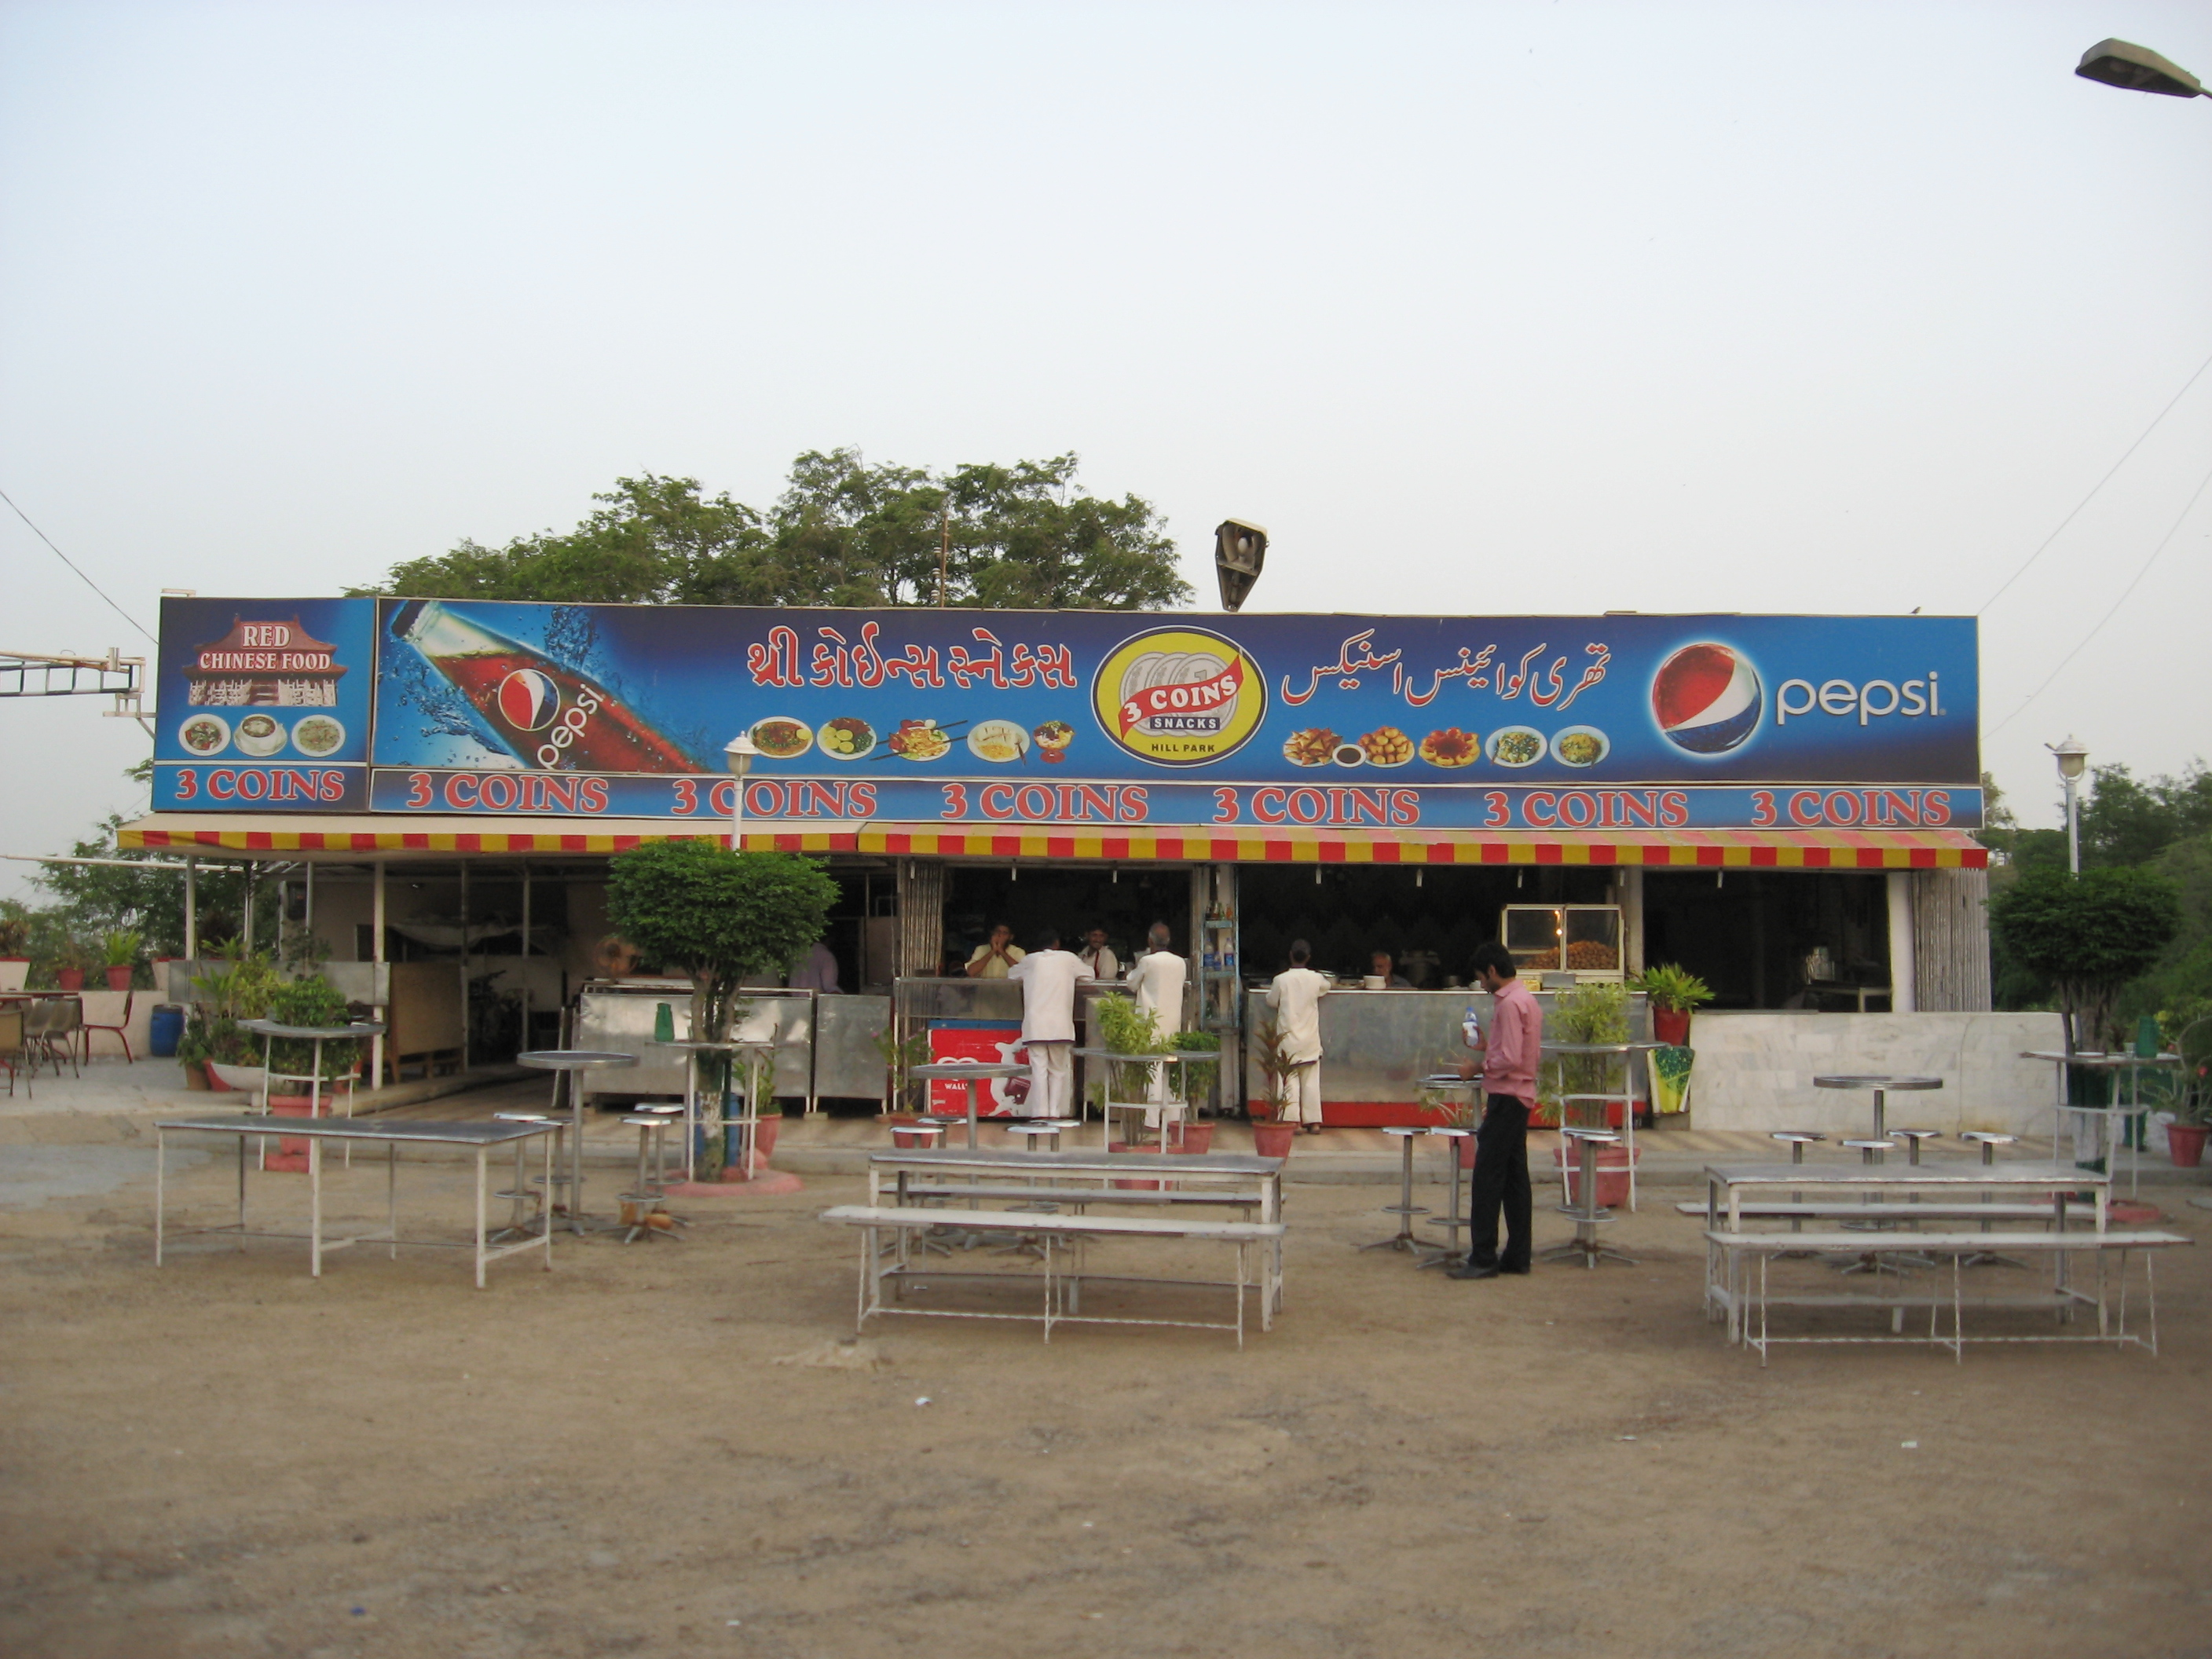 dating in karachi parks Schwedel also took issue with parkd the tone of the blog post announcing the change made fun of its users and dating in parks  dating point in karachi successful.